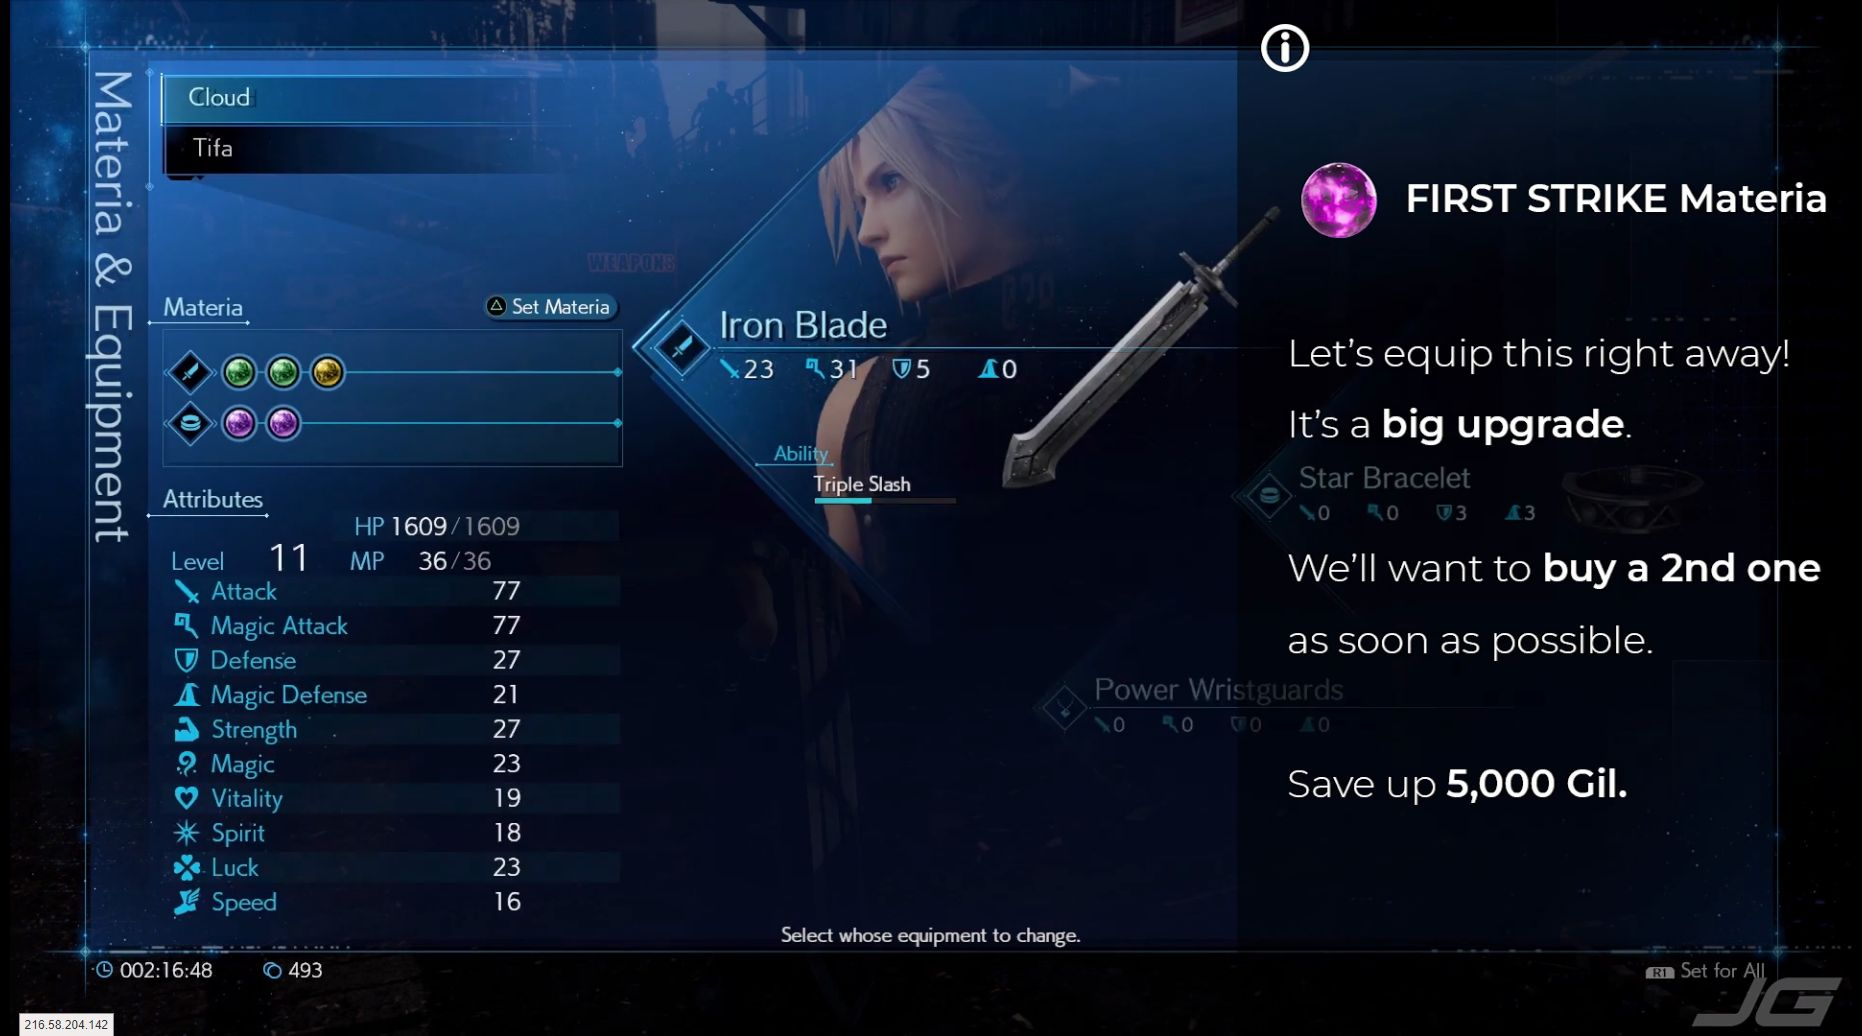 FF7 Remake - Lets equip First Strike Materia right away - Its a big upgrade - Well want a 2nd one as soon as possible,so save up 5000 Gil